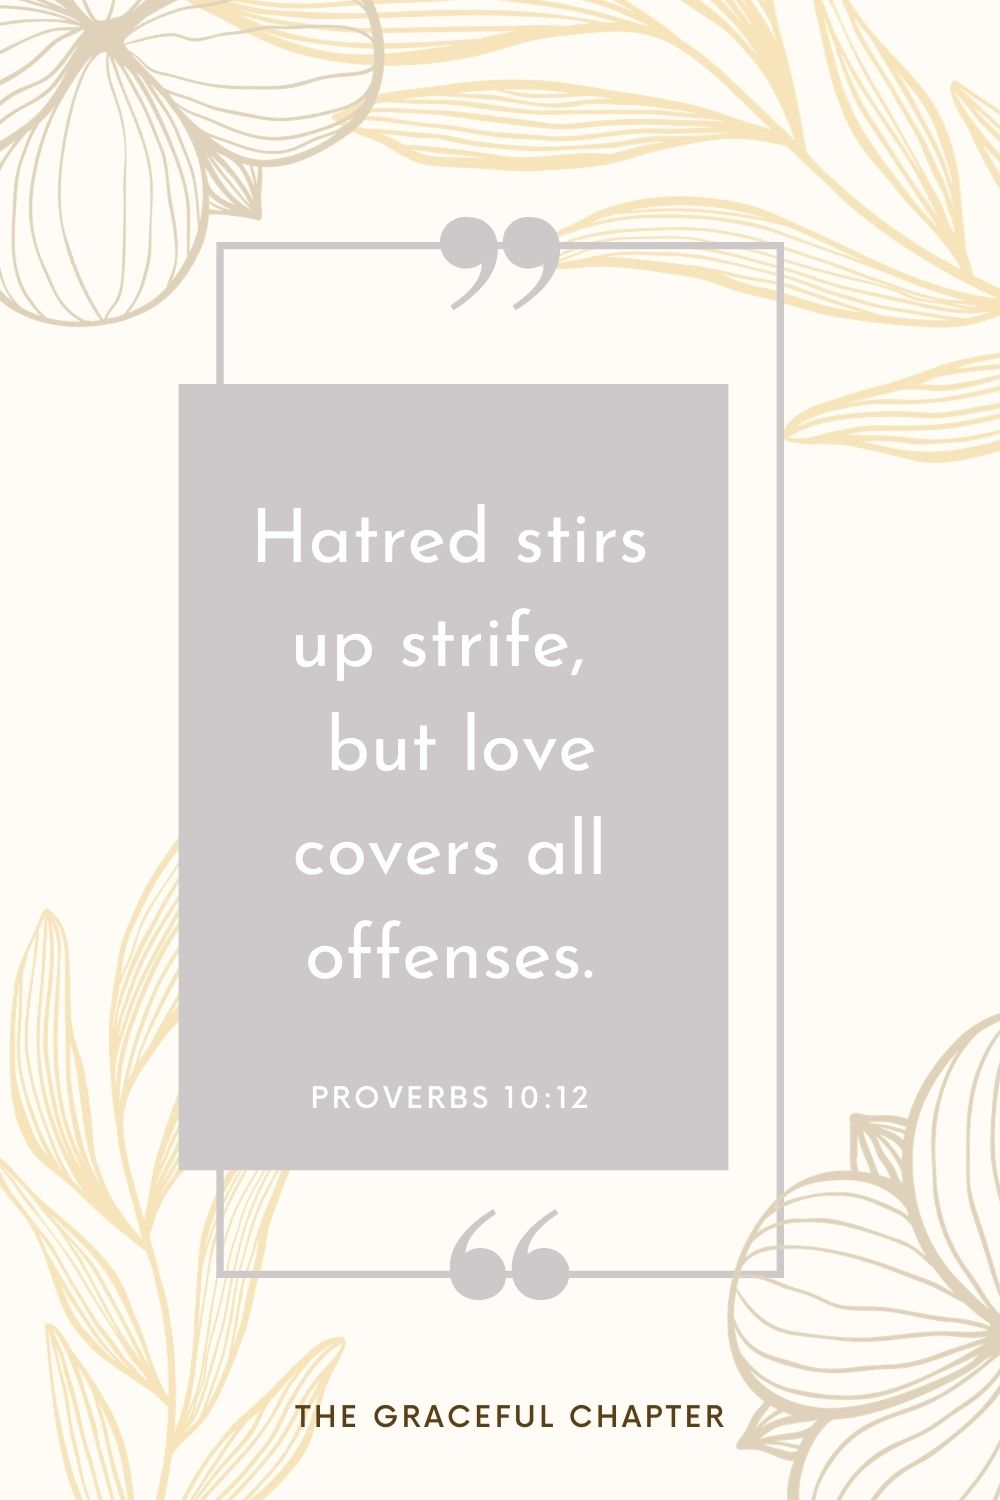 Hatred stirs up strife,  but love covers all offenses. Proverbs 10:12